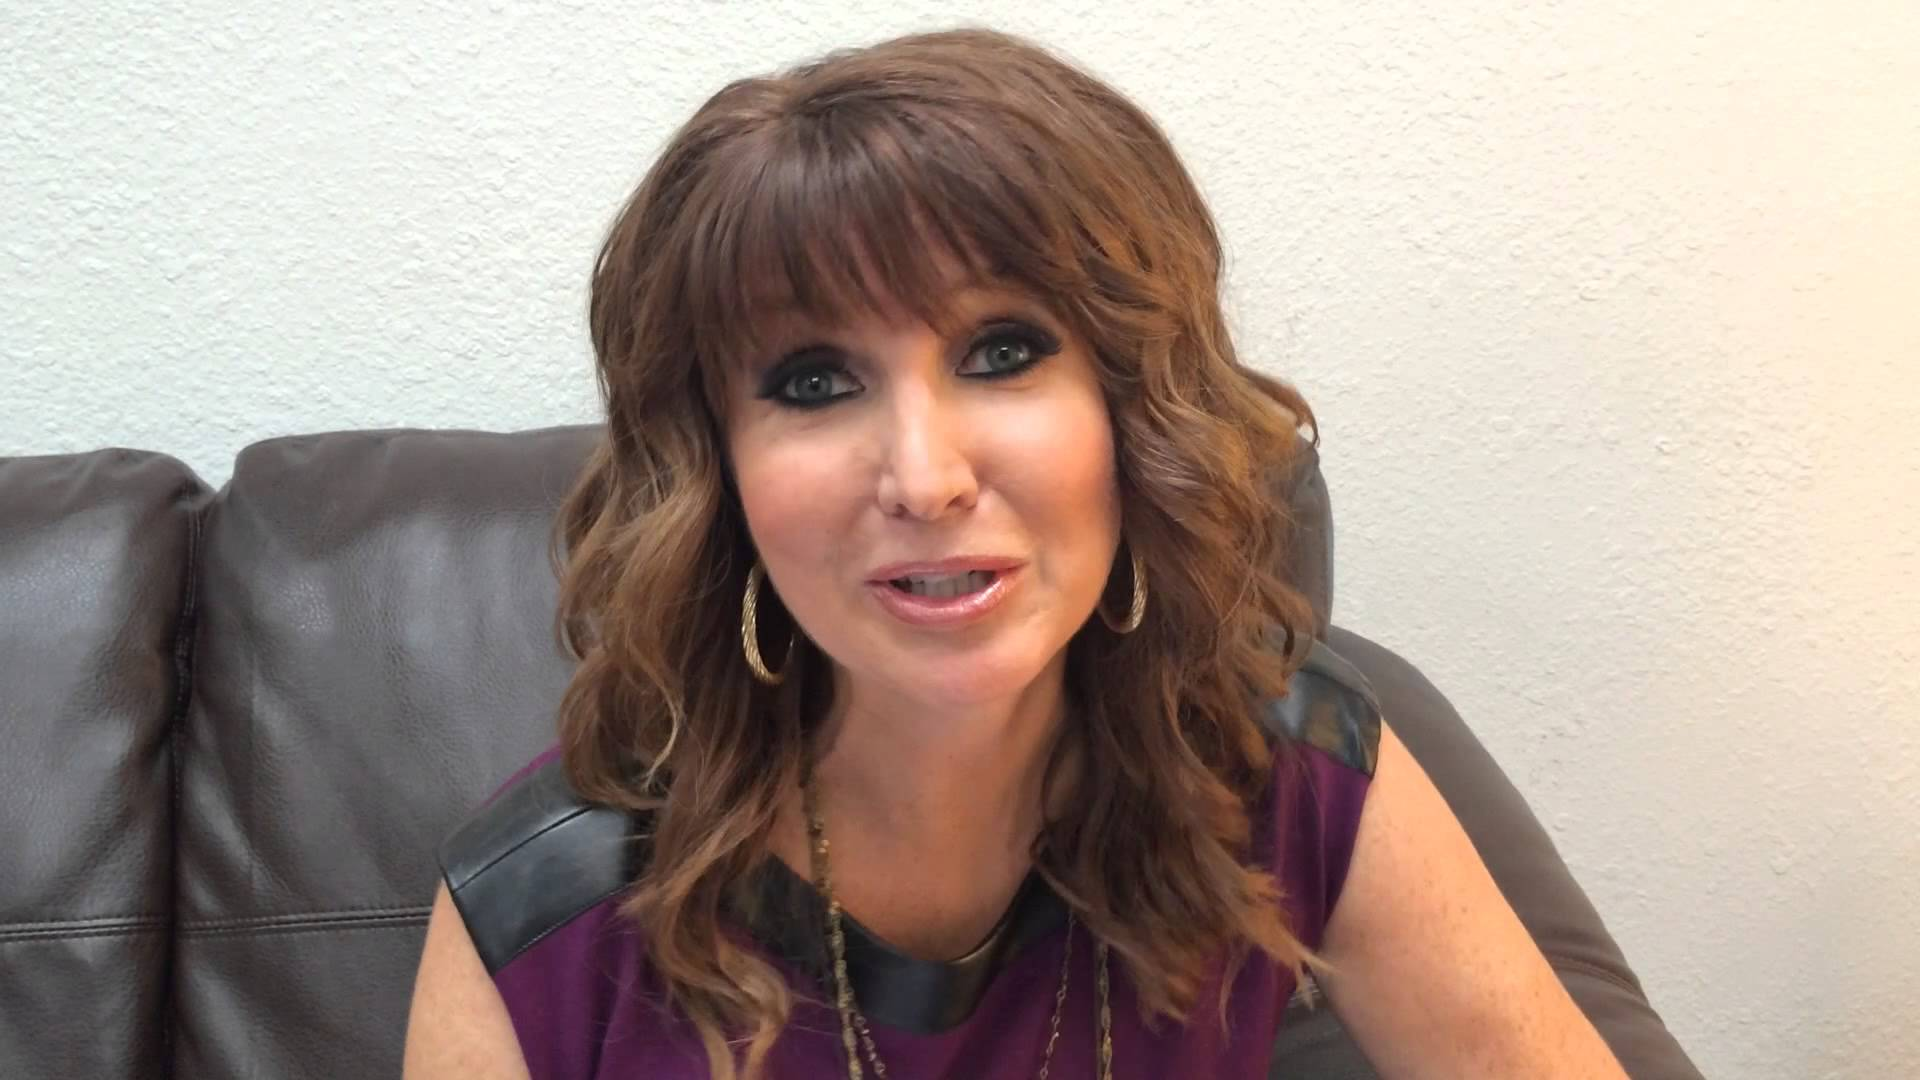 Dixie Carter nudes (79 foto and video), Tits, Cleavage, Selfie, see through 2018